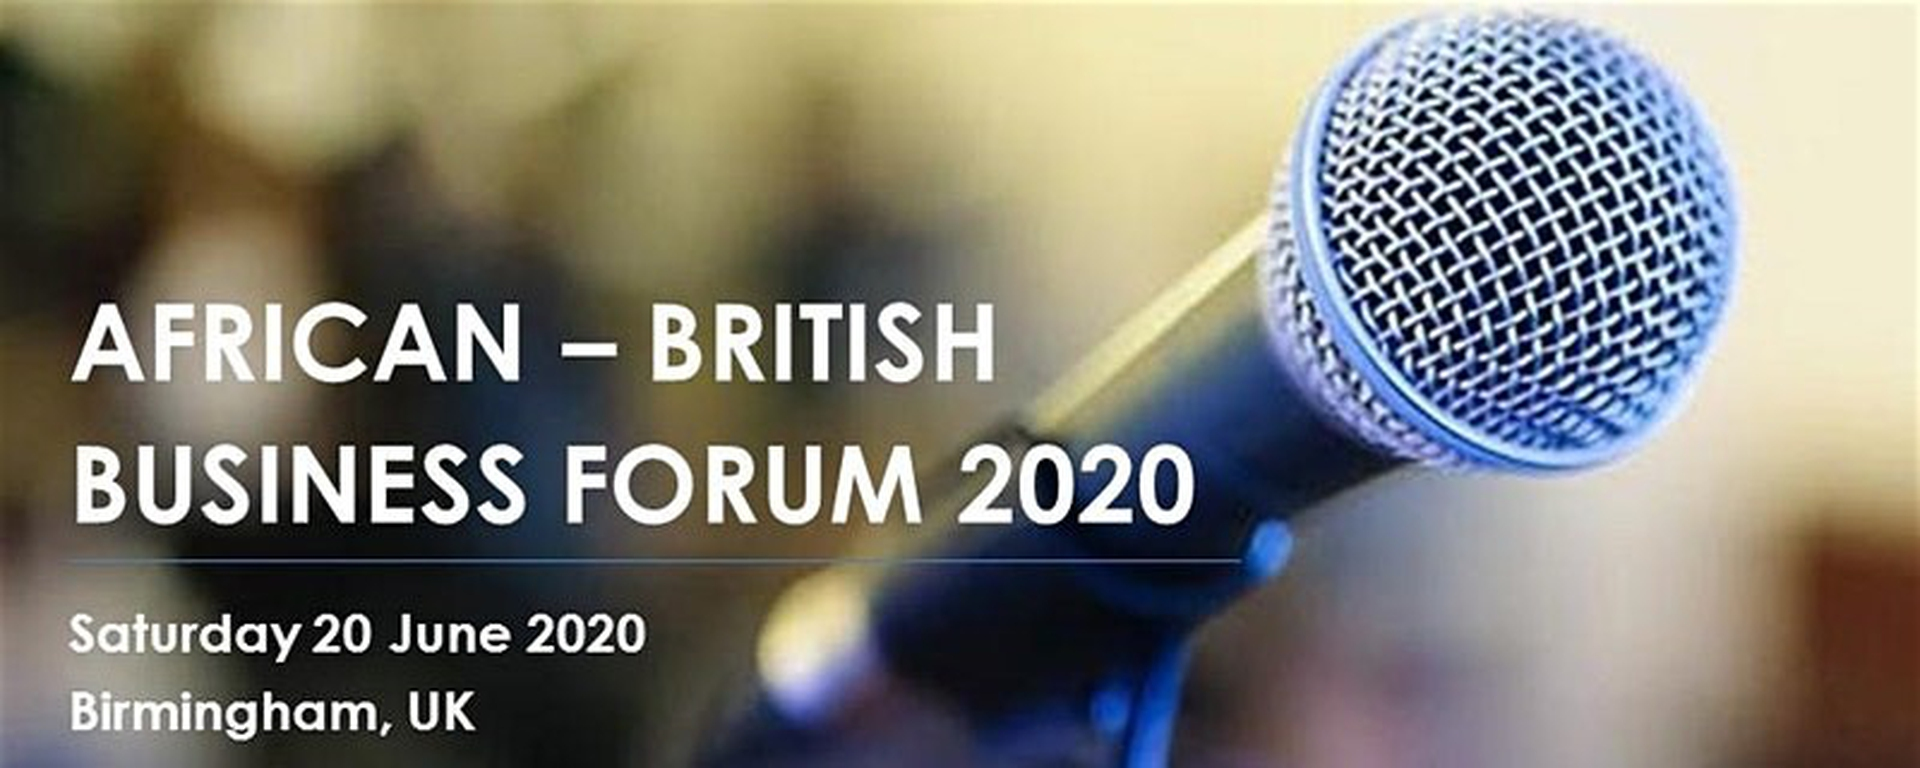 SSCG Consulting - African-British Business Forum 2020 Movemeback African event cover image